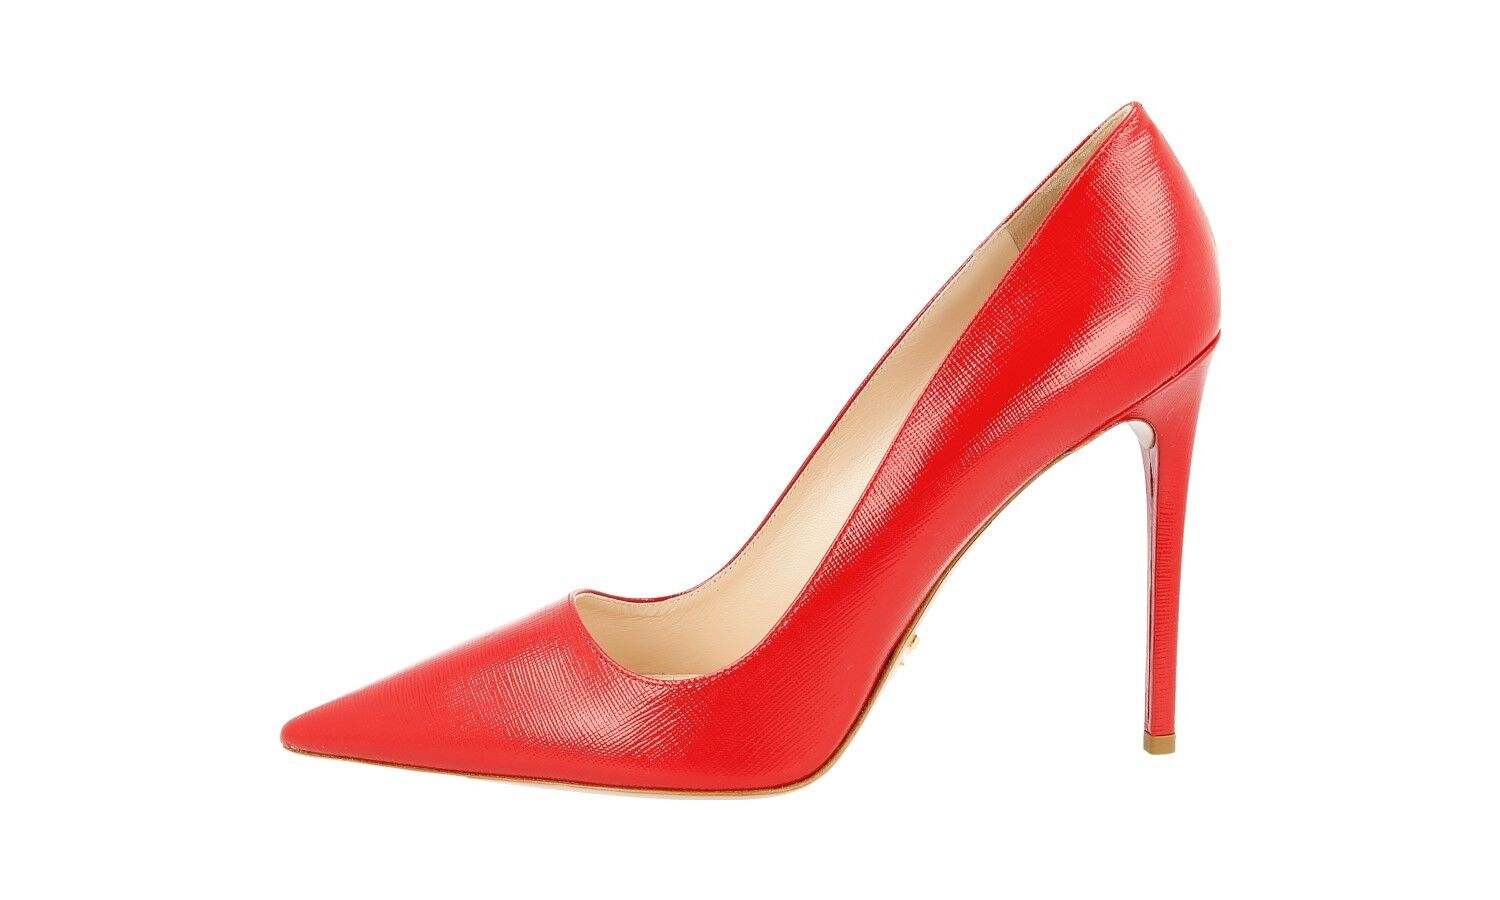 LUXUS PRADA SAFFIANO PUMPS SCHUHE 1I221F ROT ROT 1I221F NEU NEW 39 39,5 UK 6 e4410d